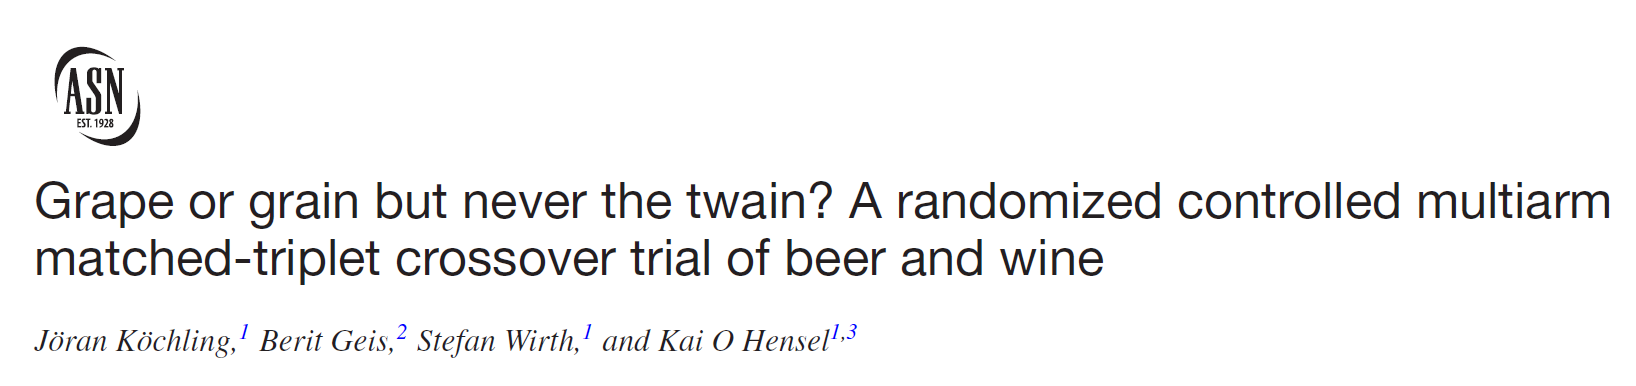 Grape of grain but never the twain? A randomized controlled multiarm matched-triplet crossover trial of beer and wine.